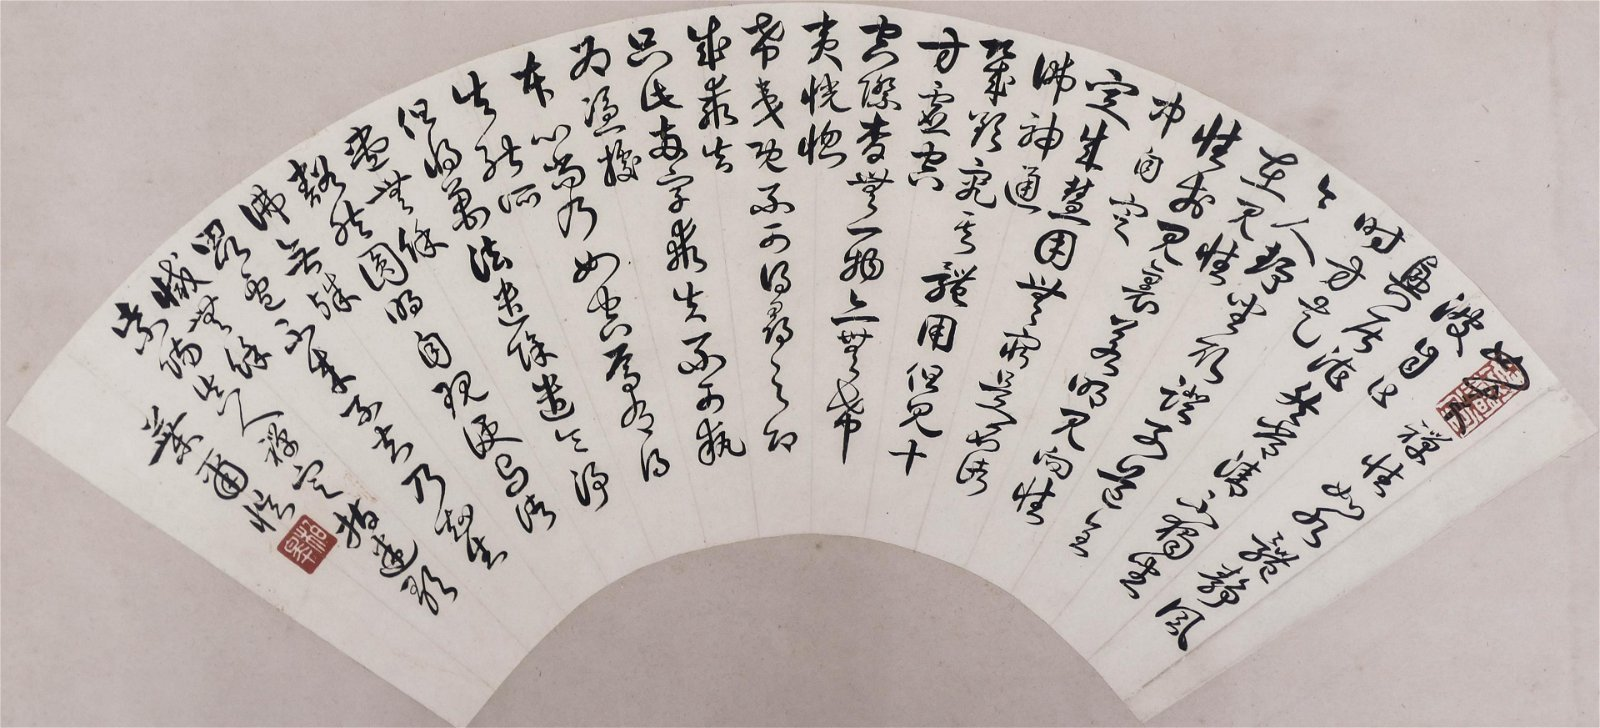 Ye Erkai (1846-1940 Chinese) Calligraphy Fan Painting